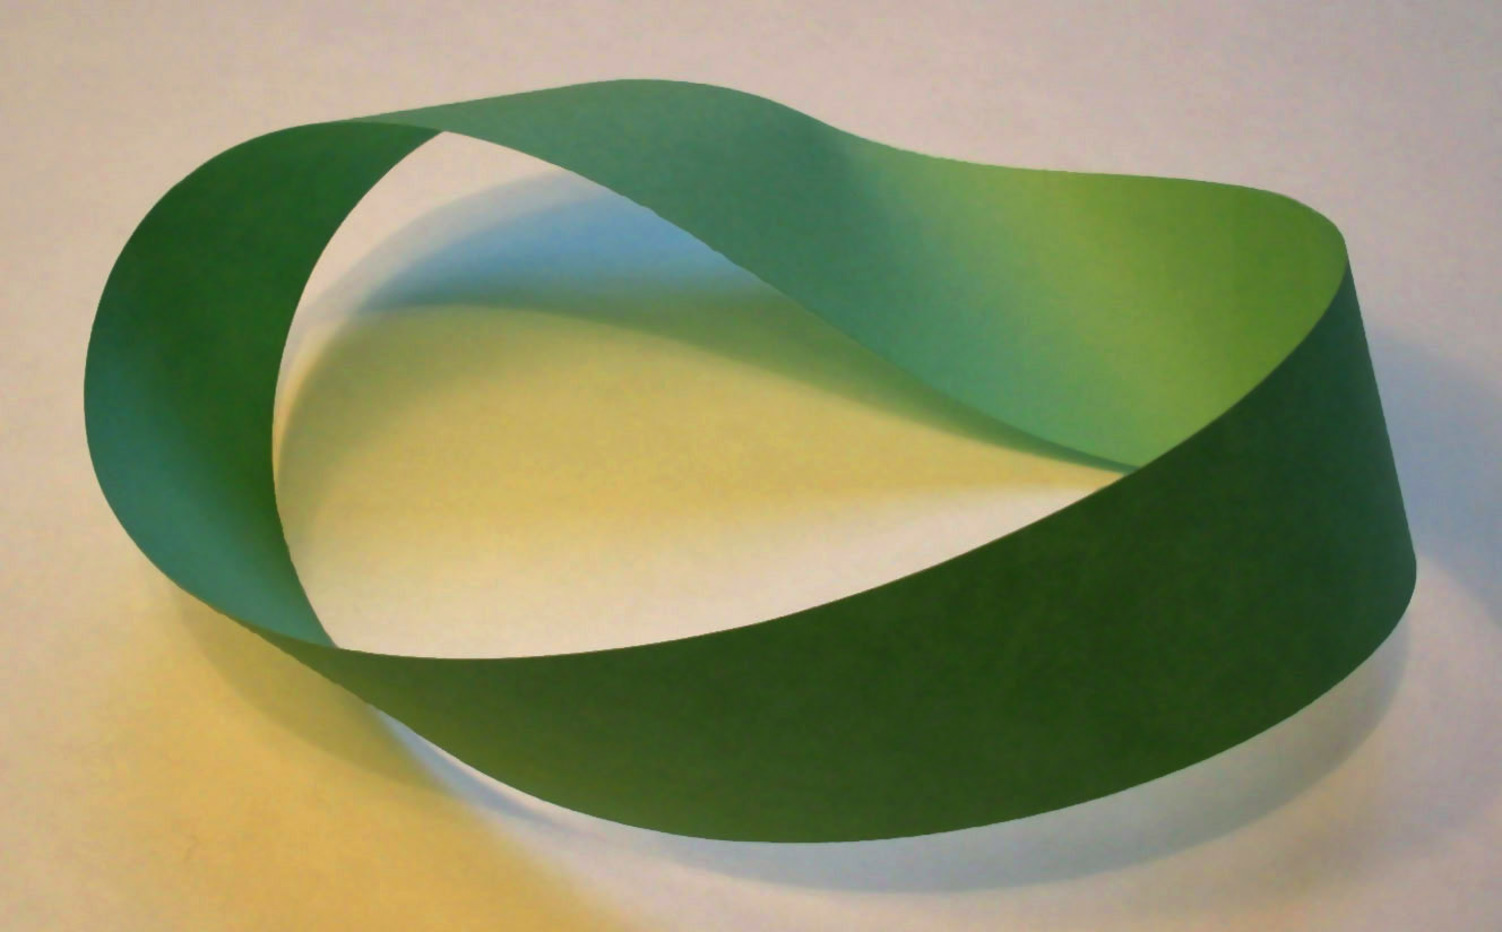 Mobius strip: a piece of paper with only one side. David Benbennick, CC BY-SA